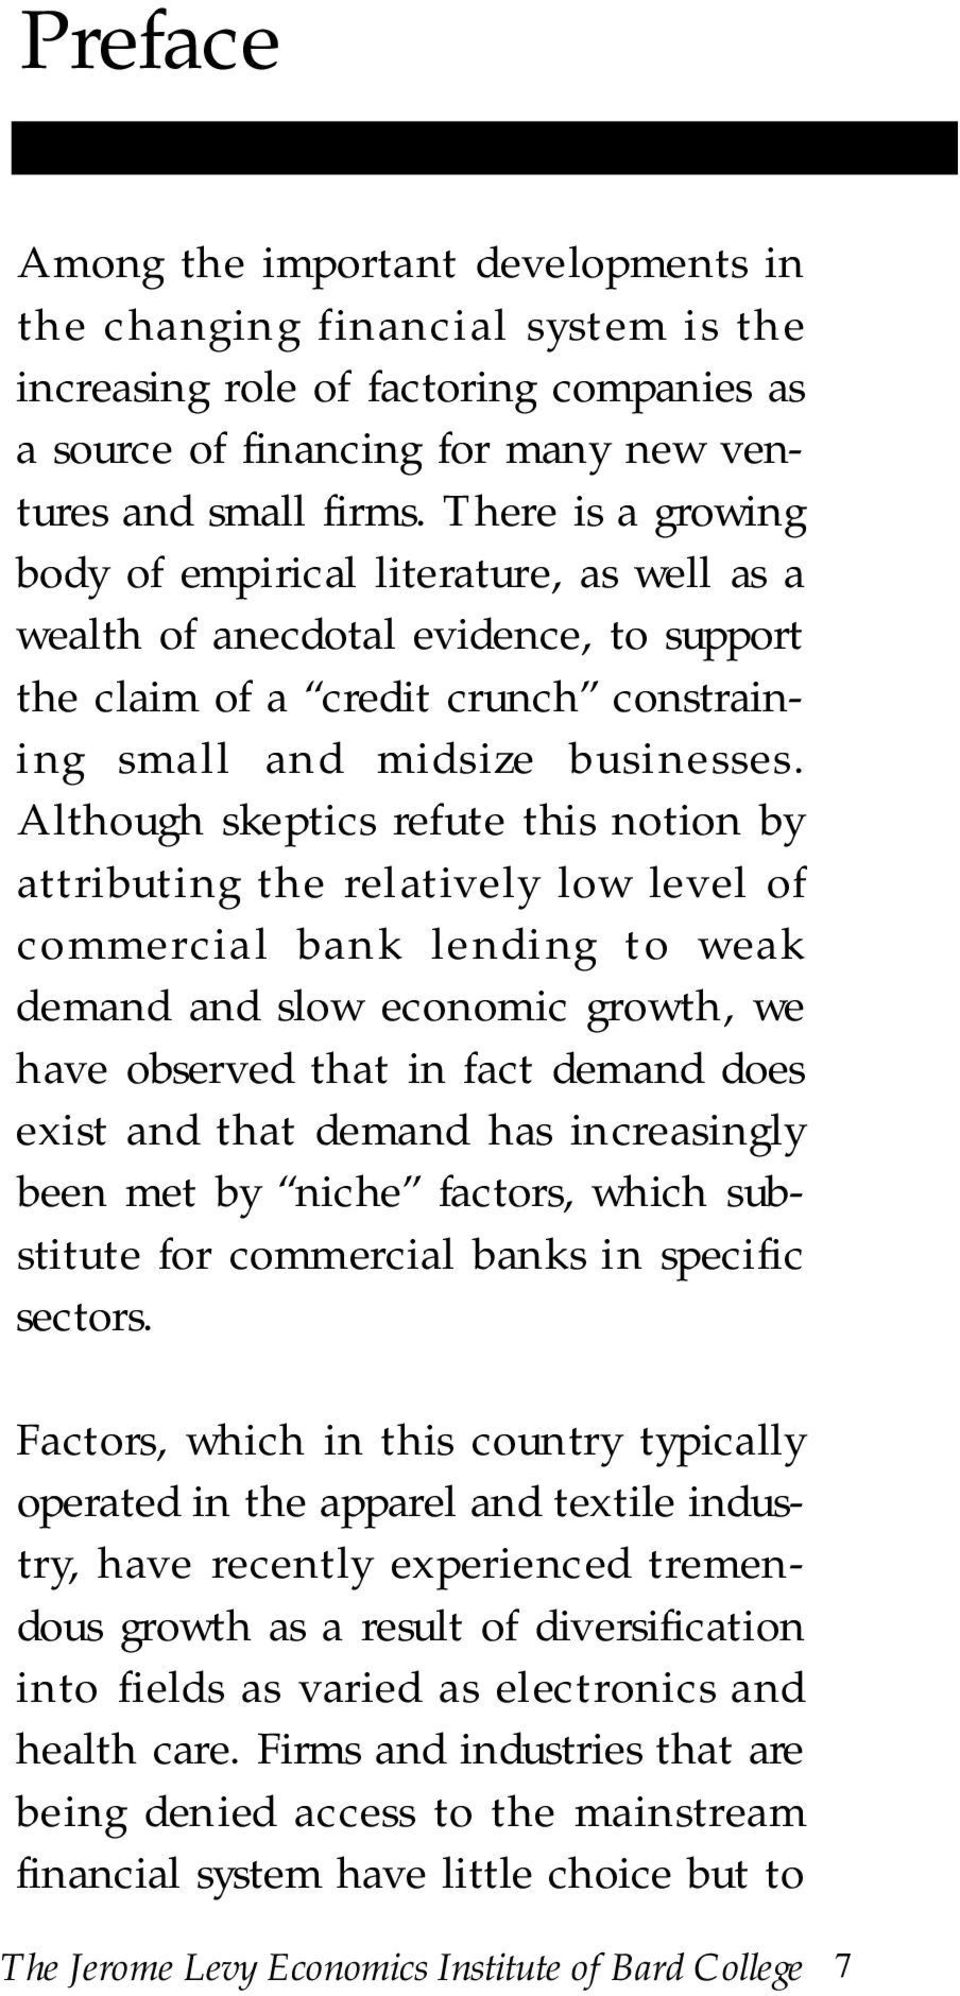 Although skeptics refute this notion by attributing the relatively low level of c o m m e rcial bank lending to weak demand and slow economic growth, we have observed that in fact demand does exist